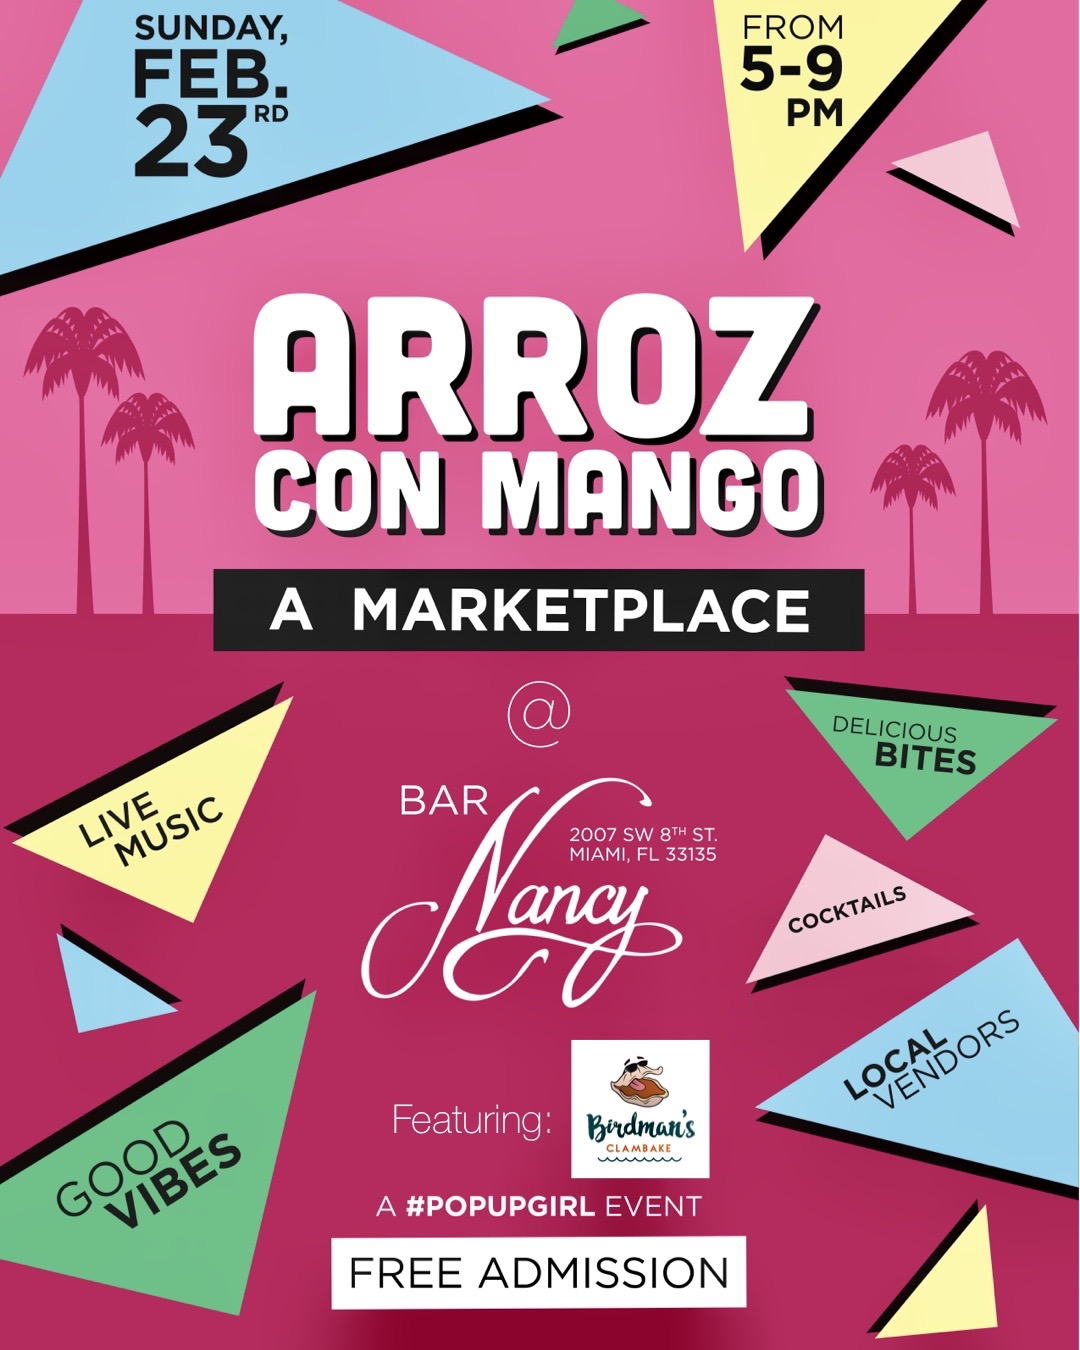 Arroz Con Mango! A Marketplace! Feat. Birdman's Clambake! at Bar Nancy